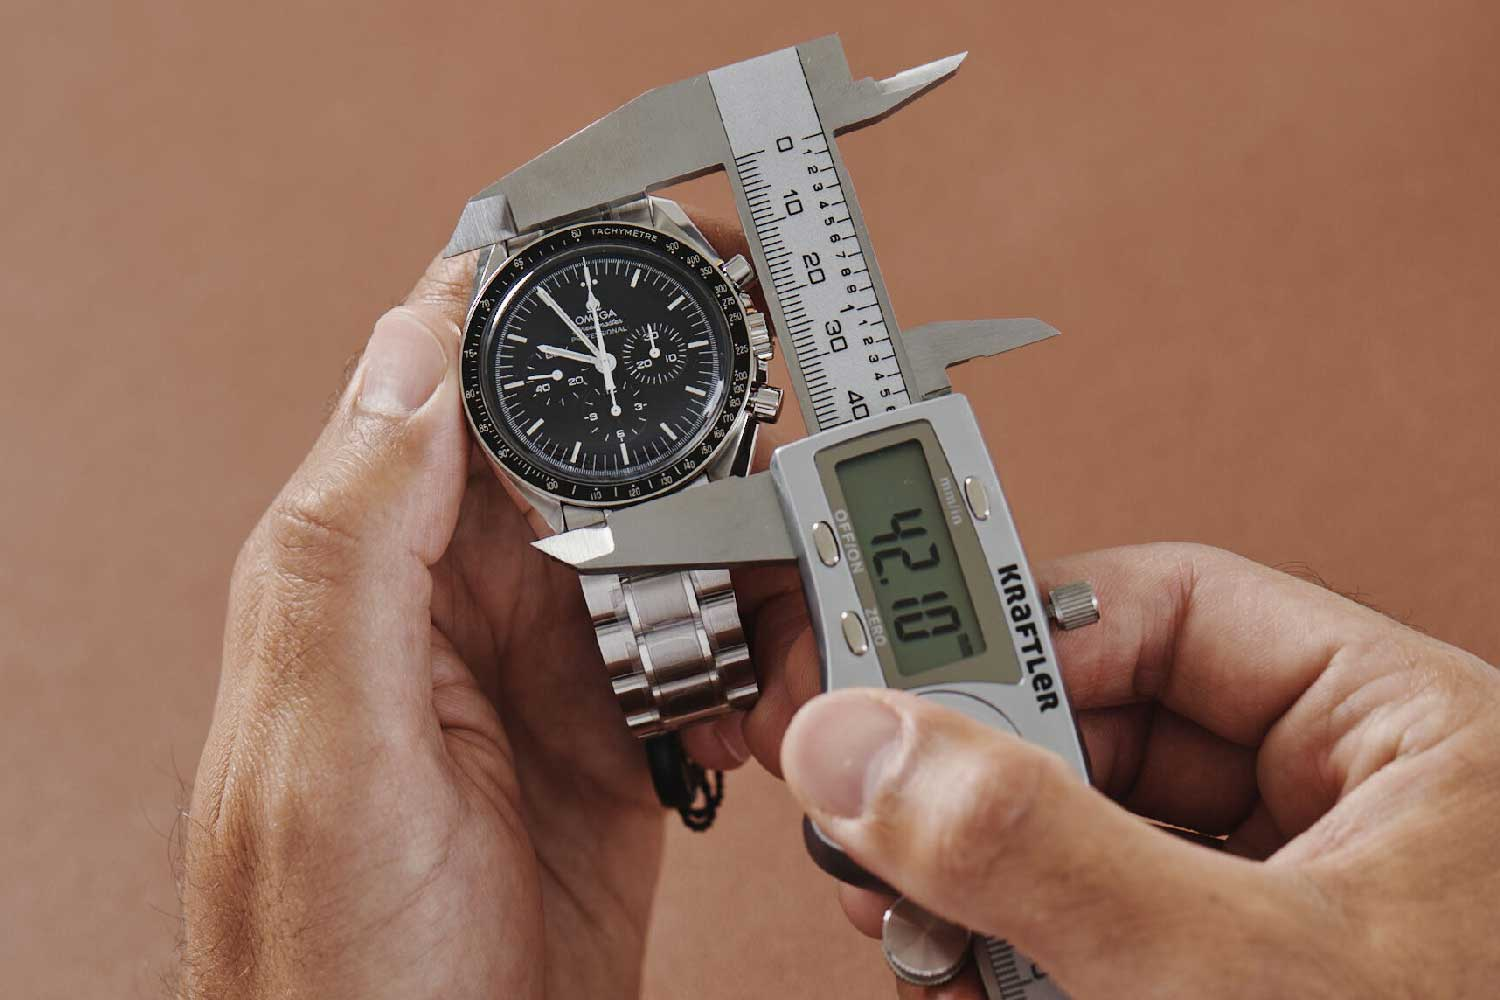 eBay's Authenticity Guarantee for watches above USD 2,000 provides an additional level of trust to a high value purchase (Image: eBay)